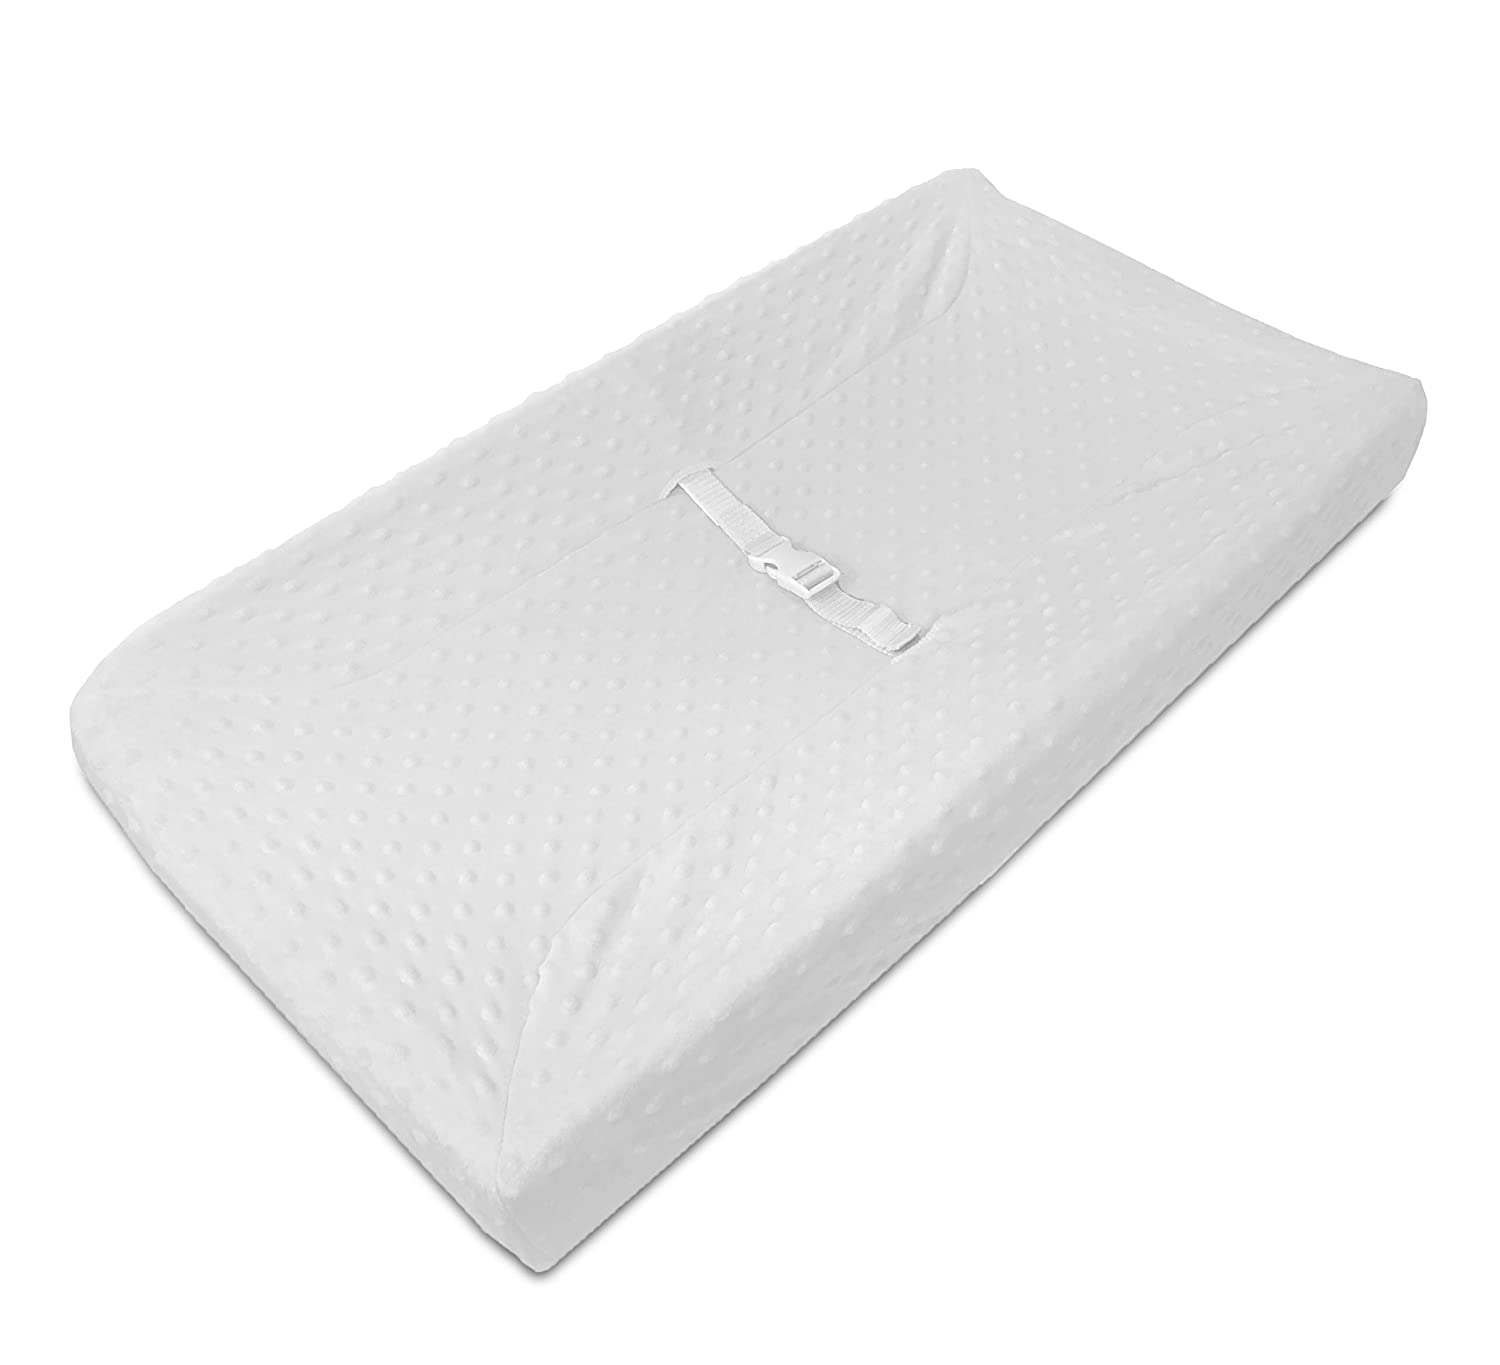 TL Care Heavenly Soft Minky Dot Fitted Contoured Changing Pad Cover, White Puff, for Boys & Girls